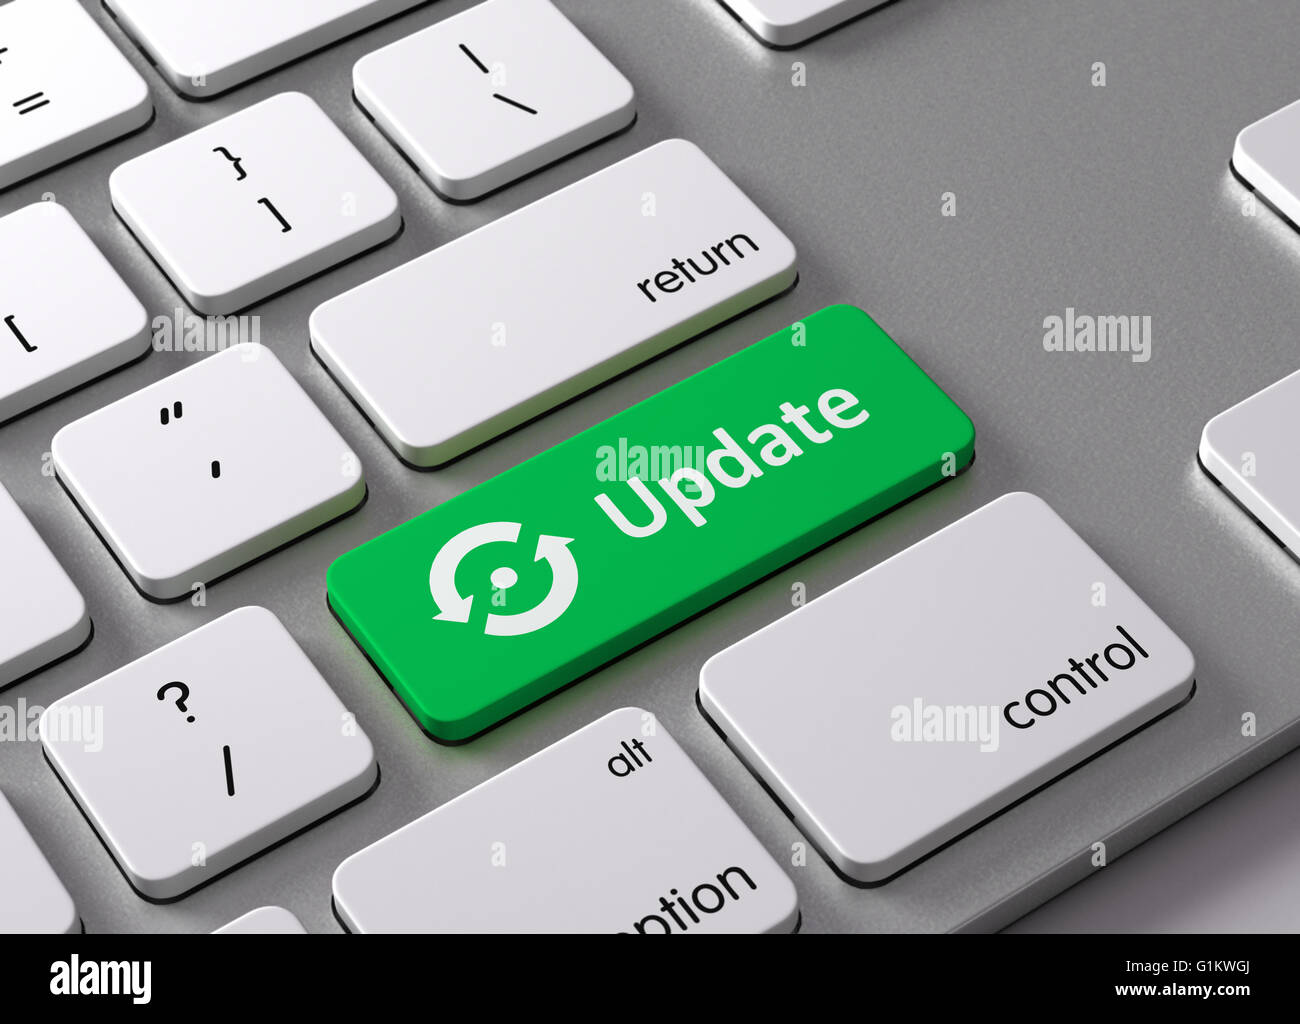 A keyboard with a green button Update - Stock Image